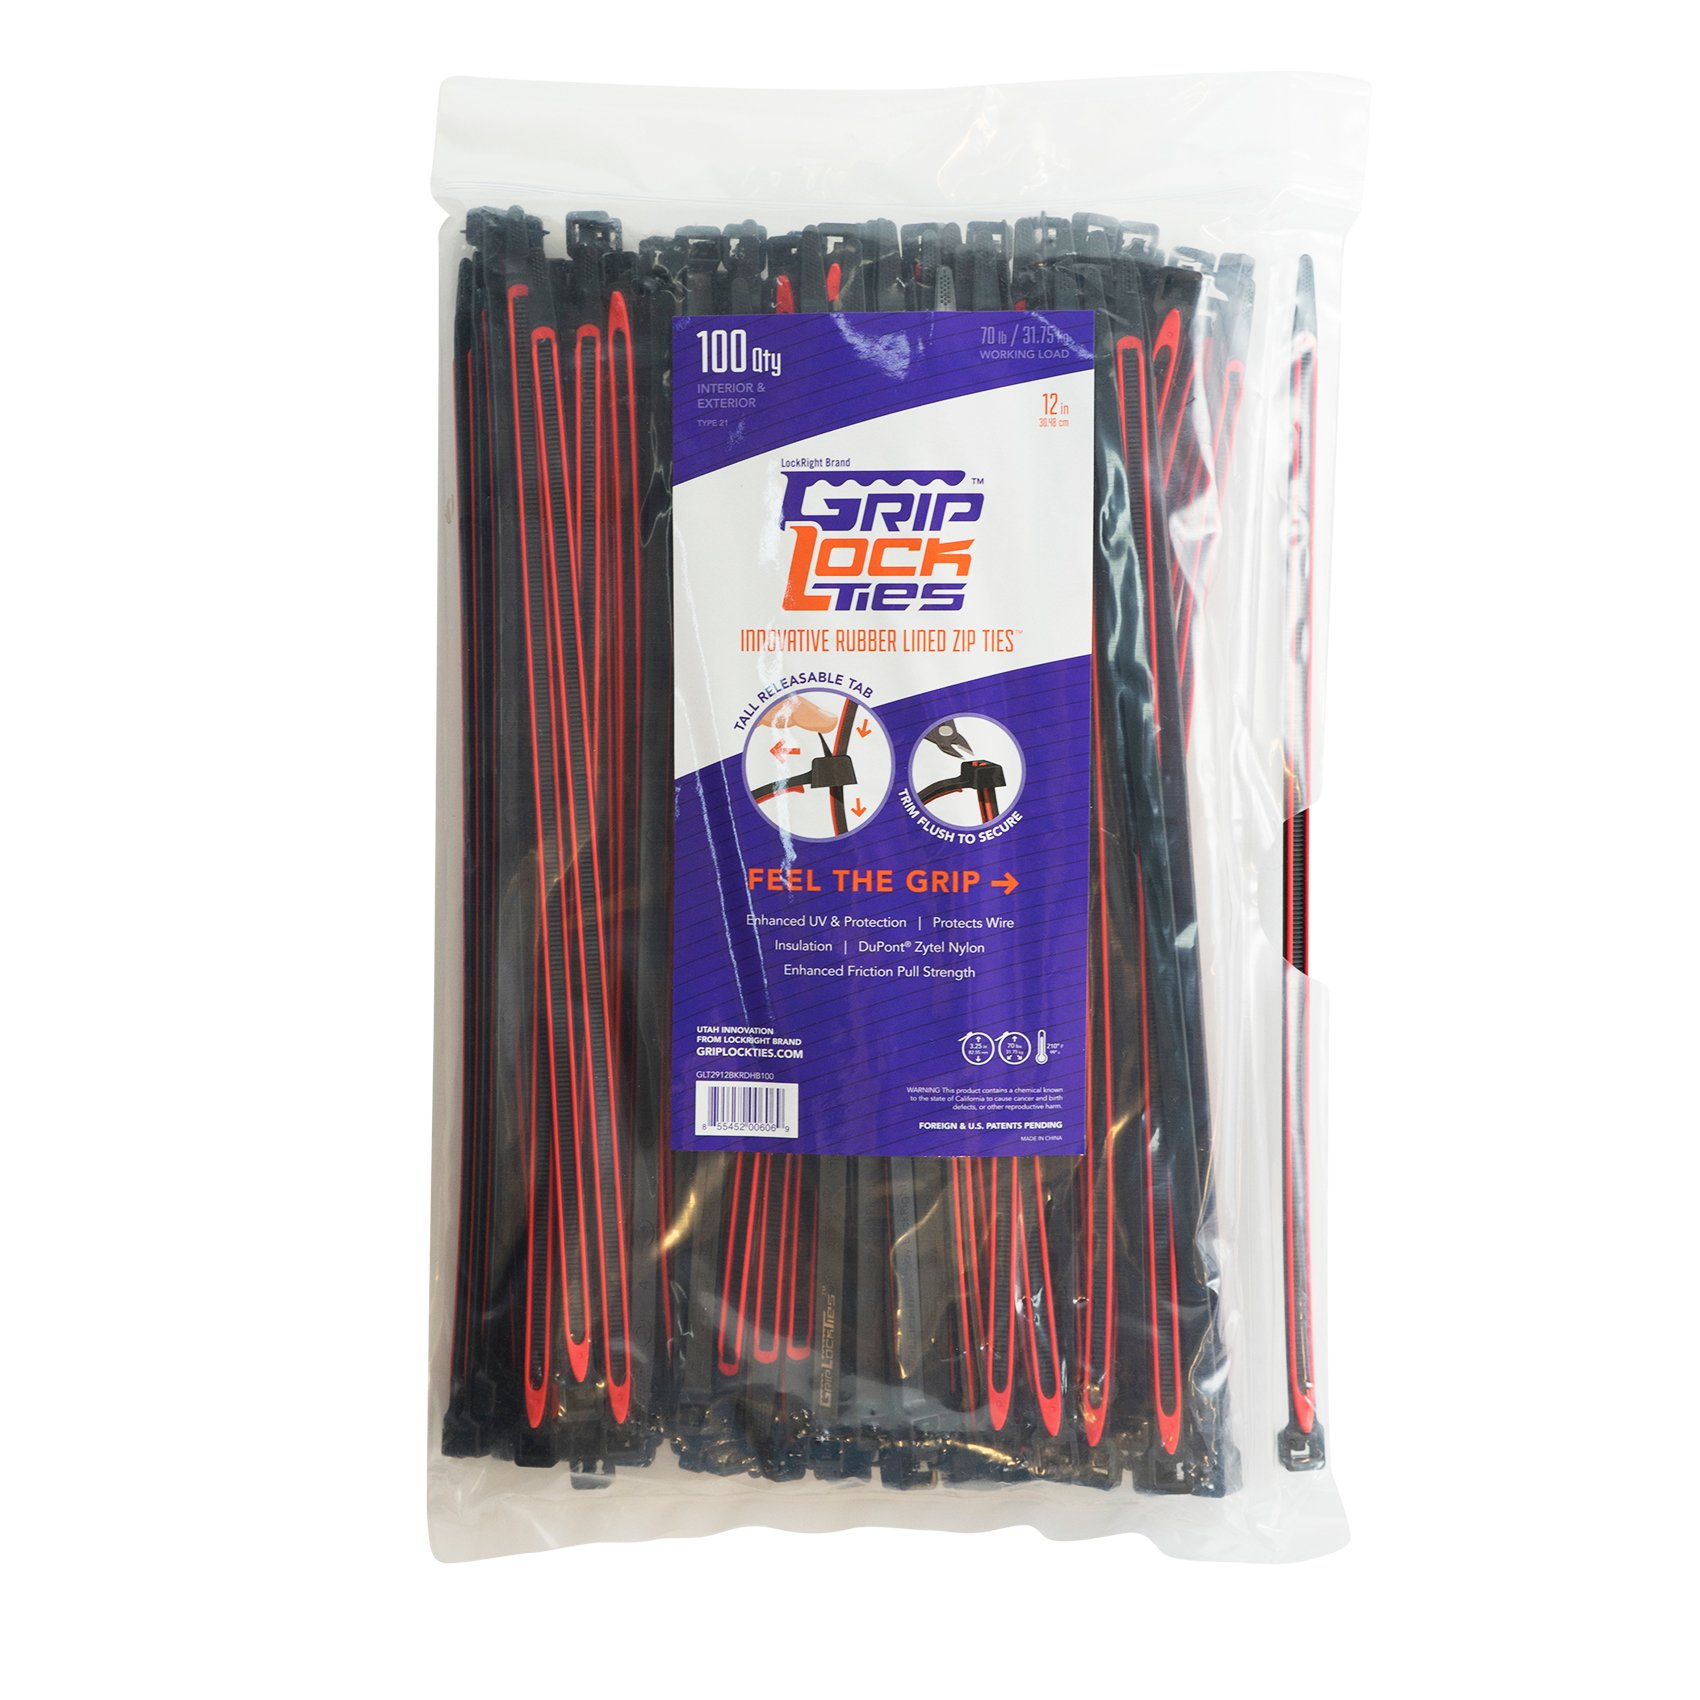 GRIPLOCKTIES, Releasable, Re-Usable, Zip Ties, Industrial Grade, Extra Grip, Rubber Lined, Durable, 12 Inches Long (100, Red)